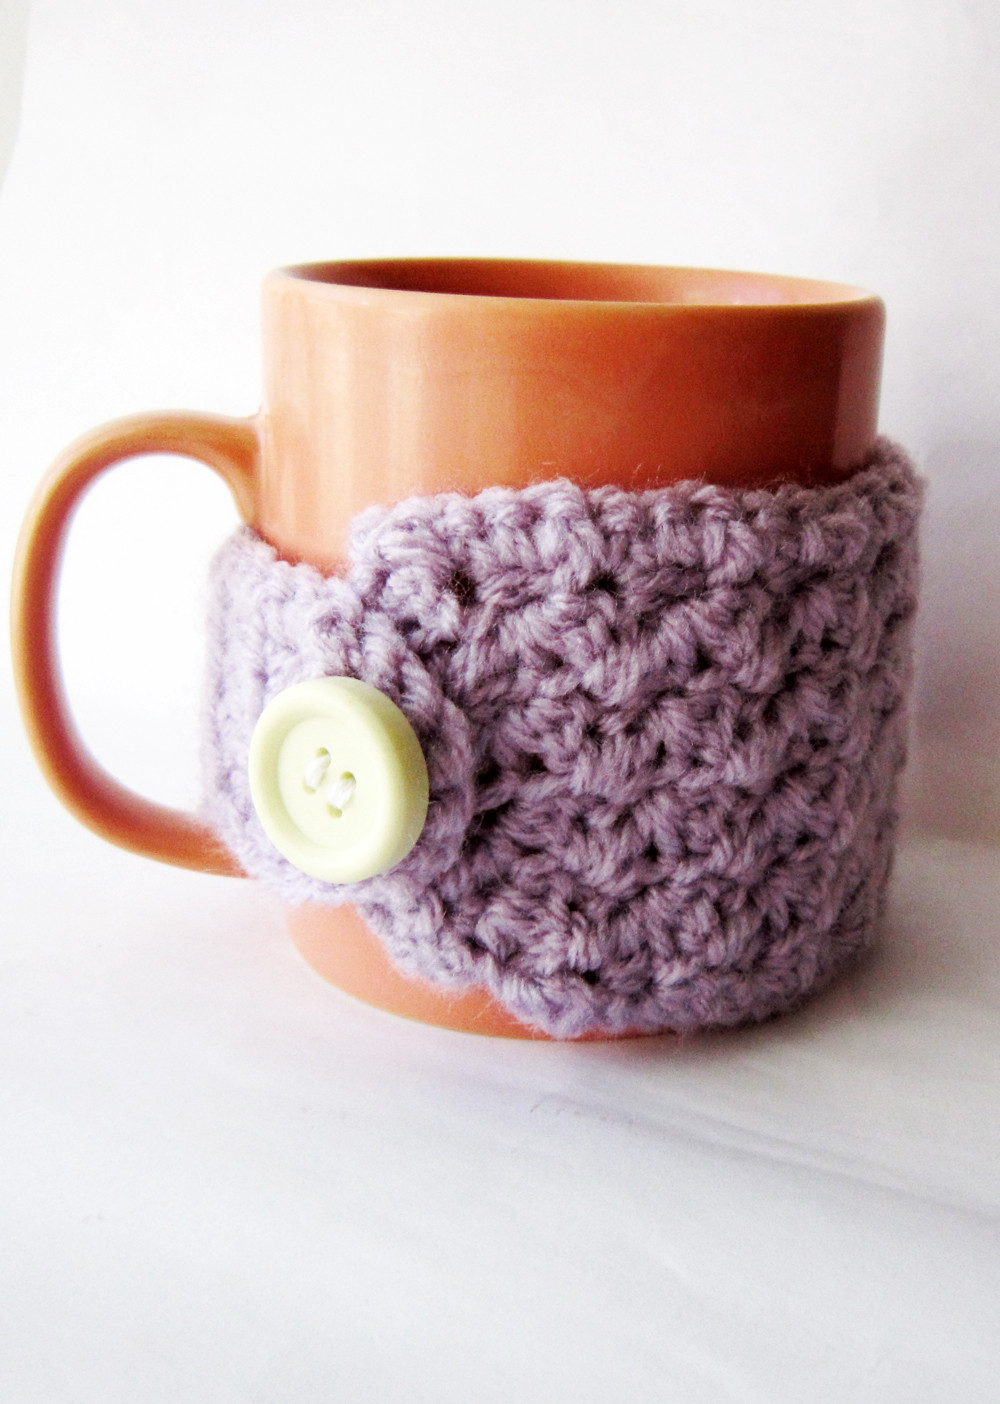 Crochet Coffee Cup Cozy Inspirational Easy Crochet Mug Cozy Free Pattern Akamatra Of Crochet Coffee Cup Cozy Awesome Free Mug Cozy Crochet Patterns with Worsted Weight Yarn